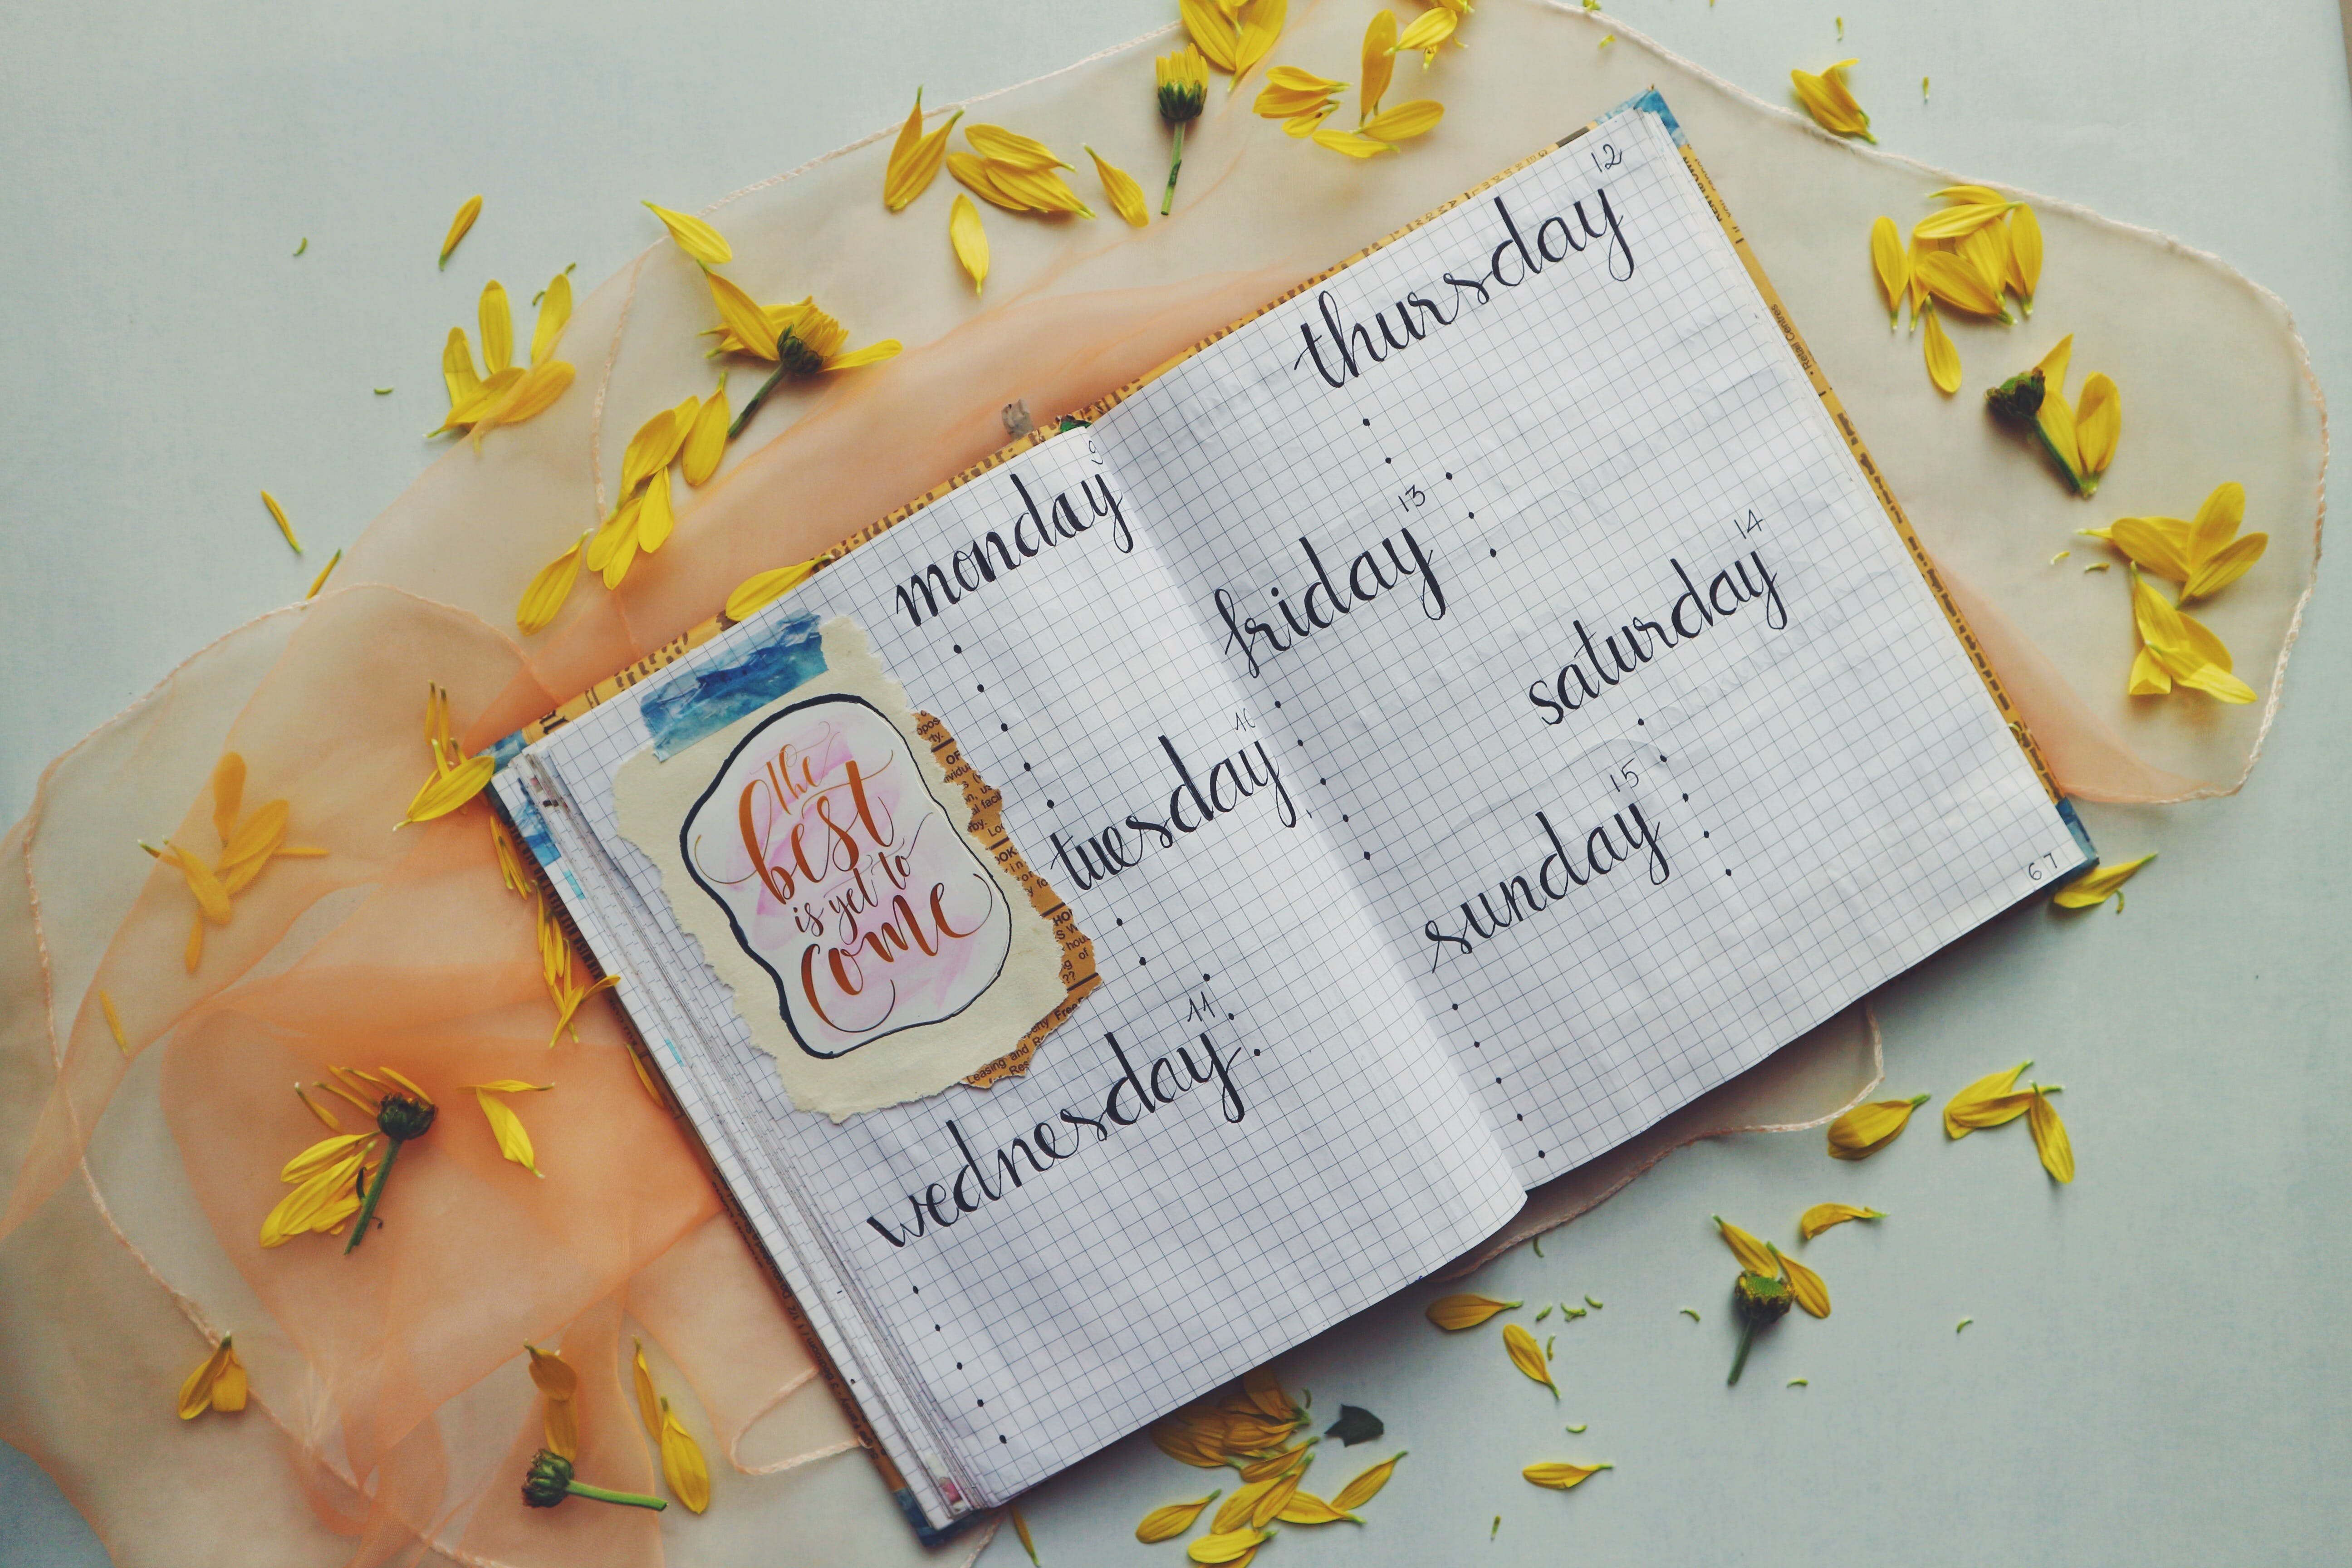 Days Printed Graphing Notebook Surrounded by Yellow Petals